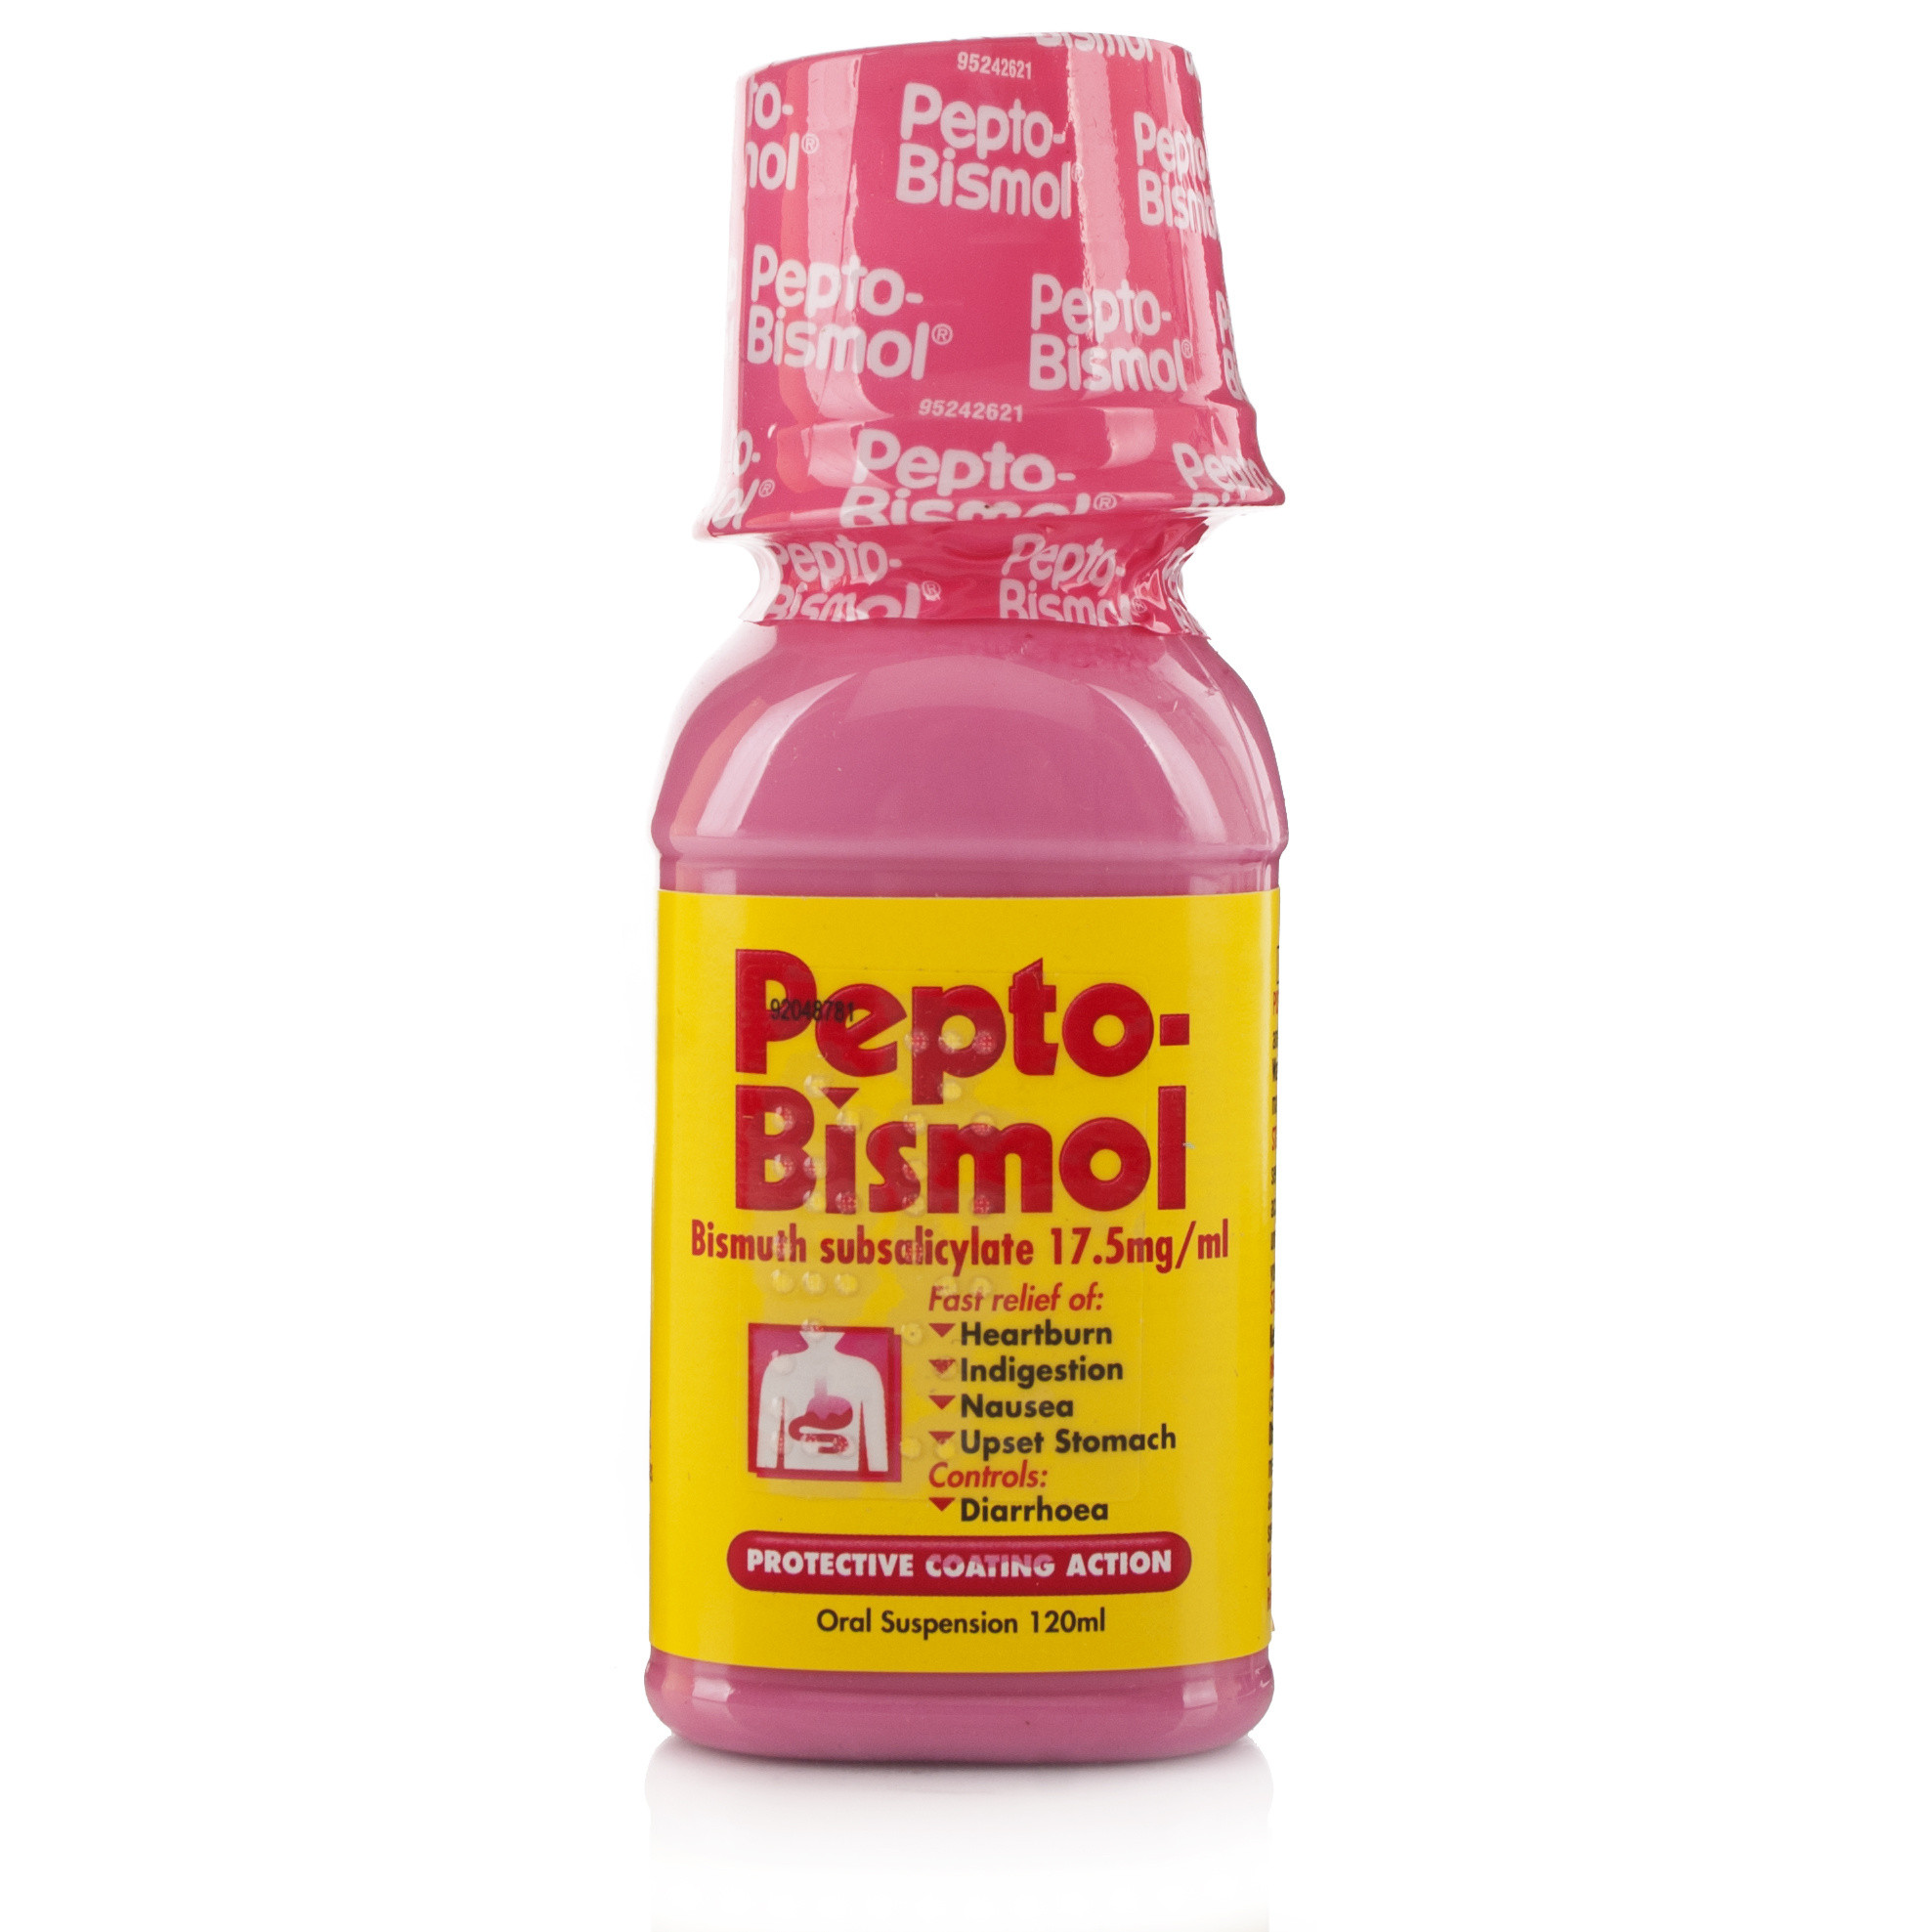 Pepto Bismol Digestive Medicine, Upset Stomach and Diarrhea Relief, Cherry, 30 Chewable Tablets out of 5 stars $ Pepto-Bismol To-Go Cherry Chewable Tablets 12 Count (Pack of 2) out of 5 stars 6. $ Next. Customers also shopped weatherlyp.gqs: